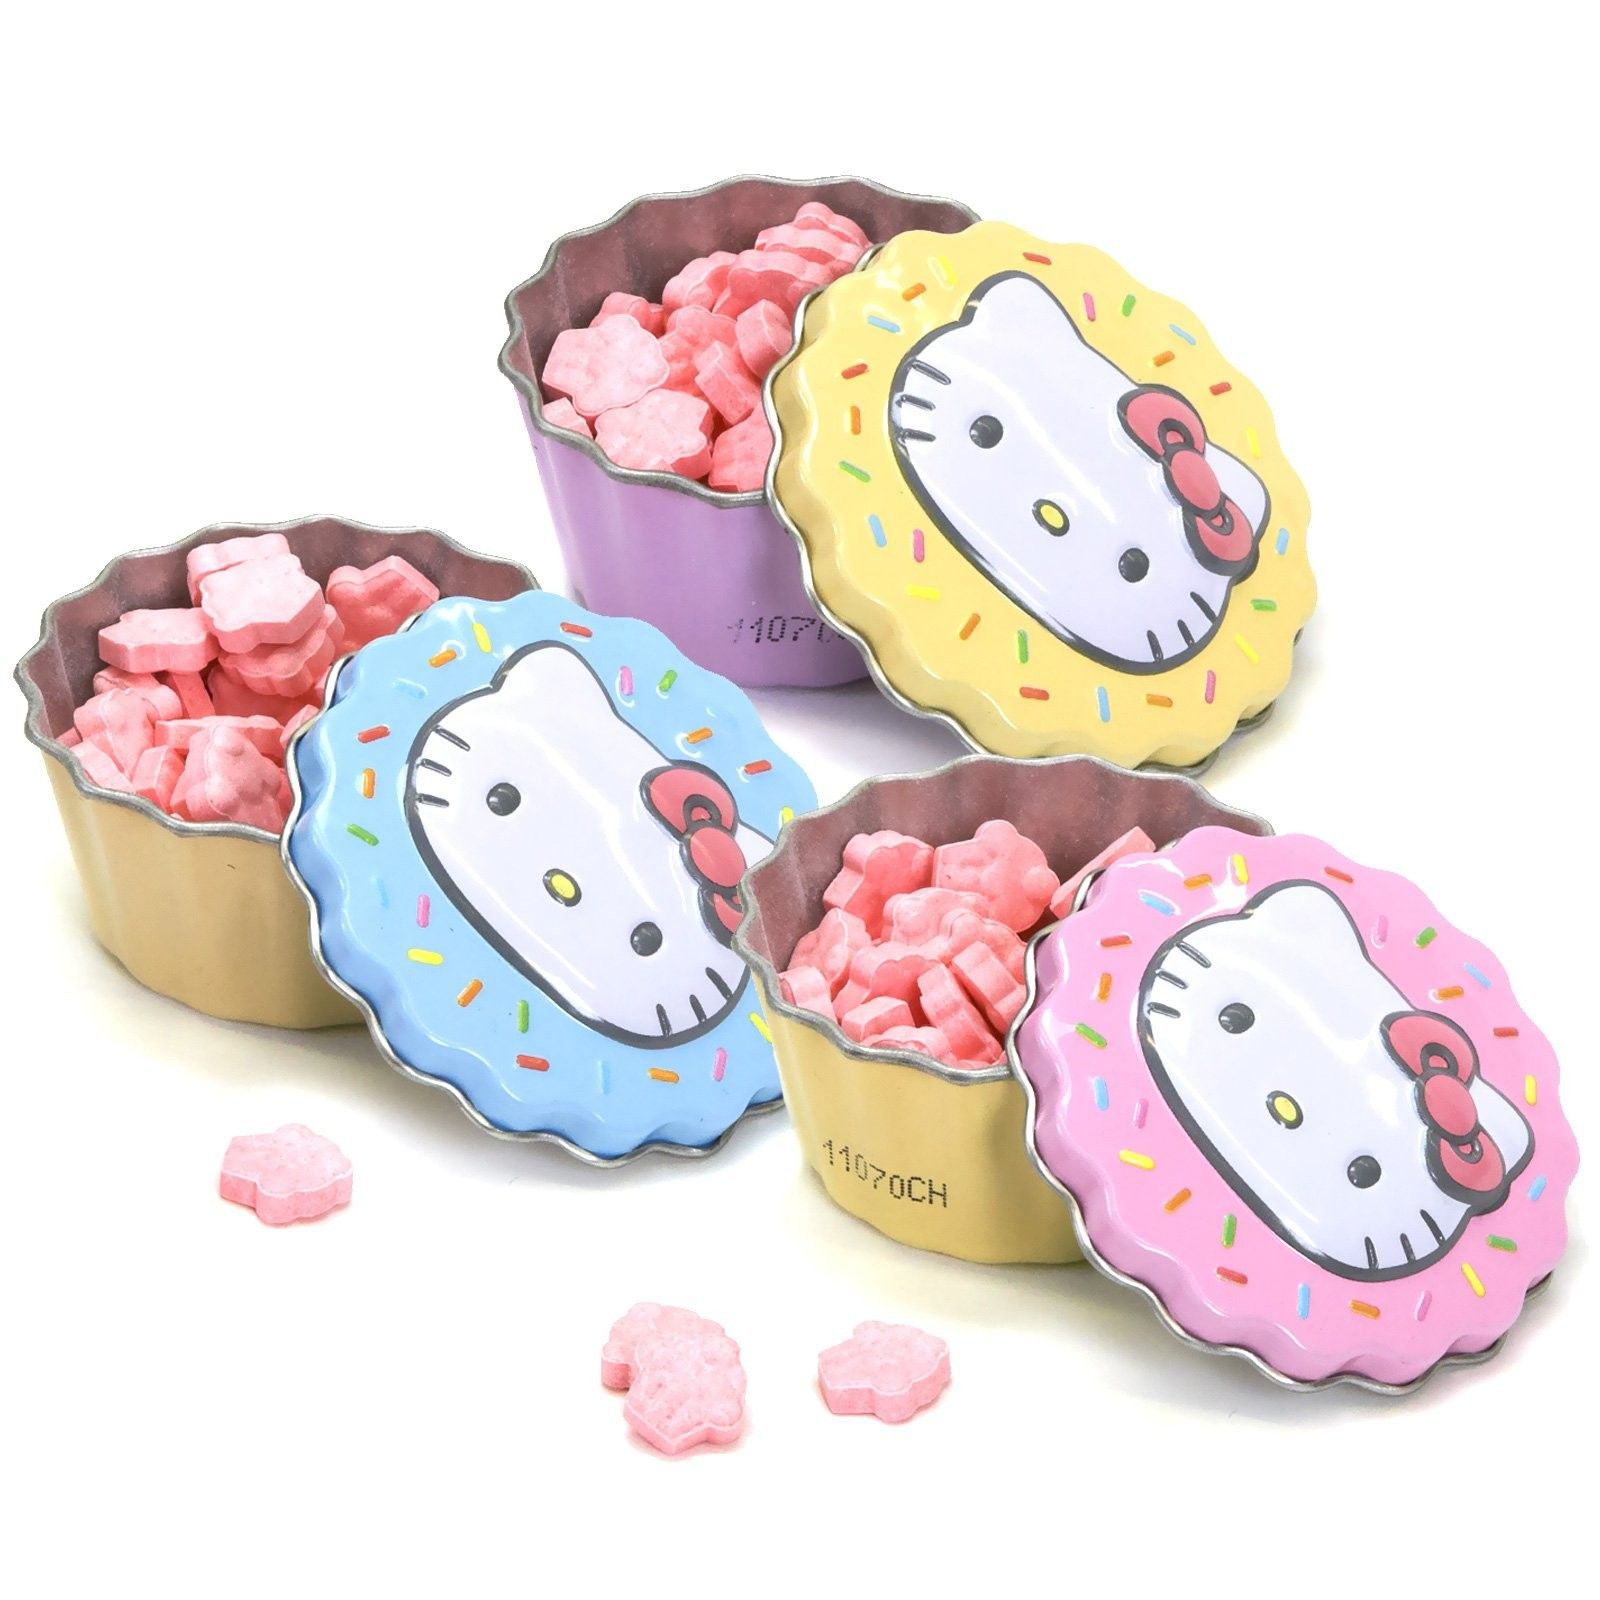 Hello Kitty Sweet Cupcake Candy Tin - Includes (1) assorted candy tin with sweet candies, our choice please. Contains 0.8 ozs. This is an officially licensed Hello Kitty product.